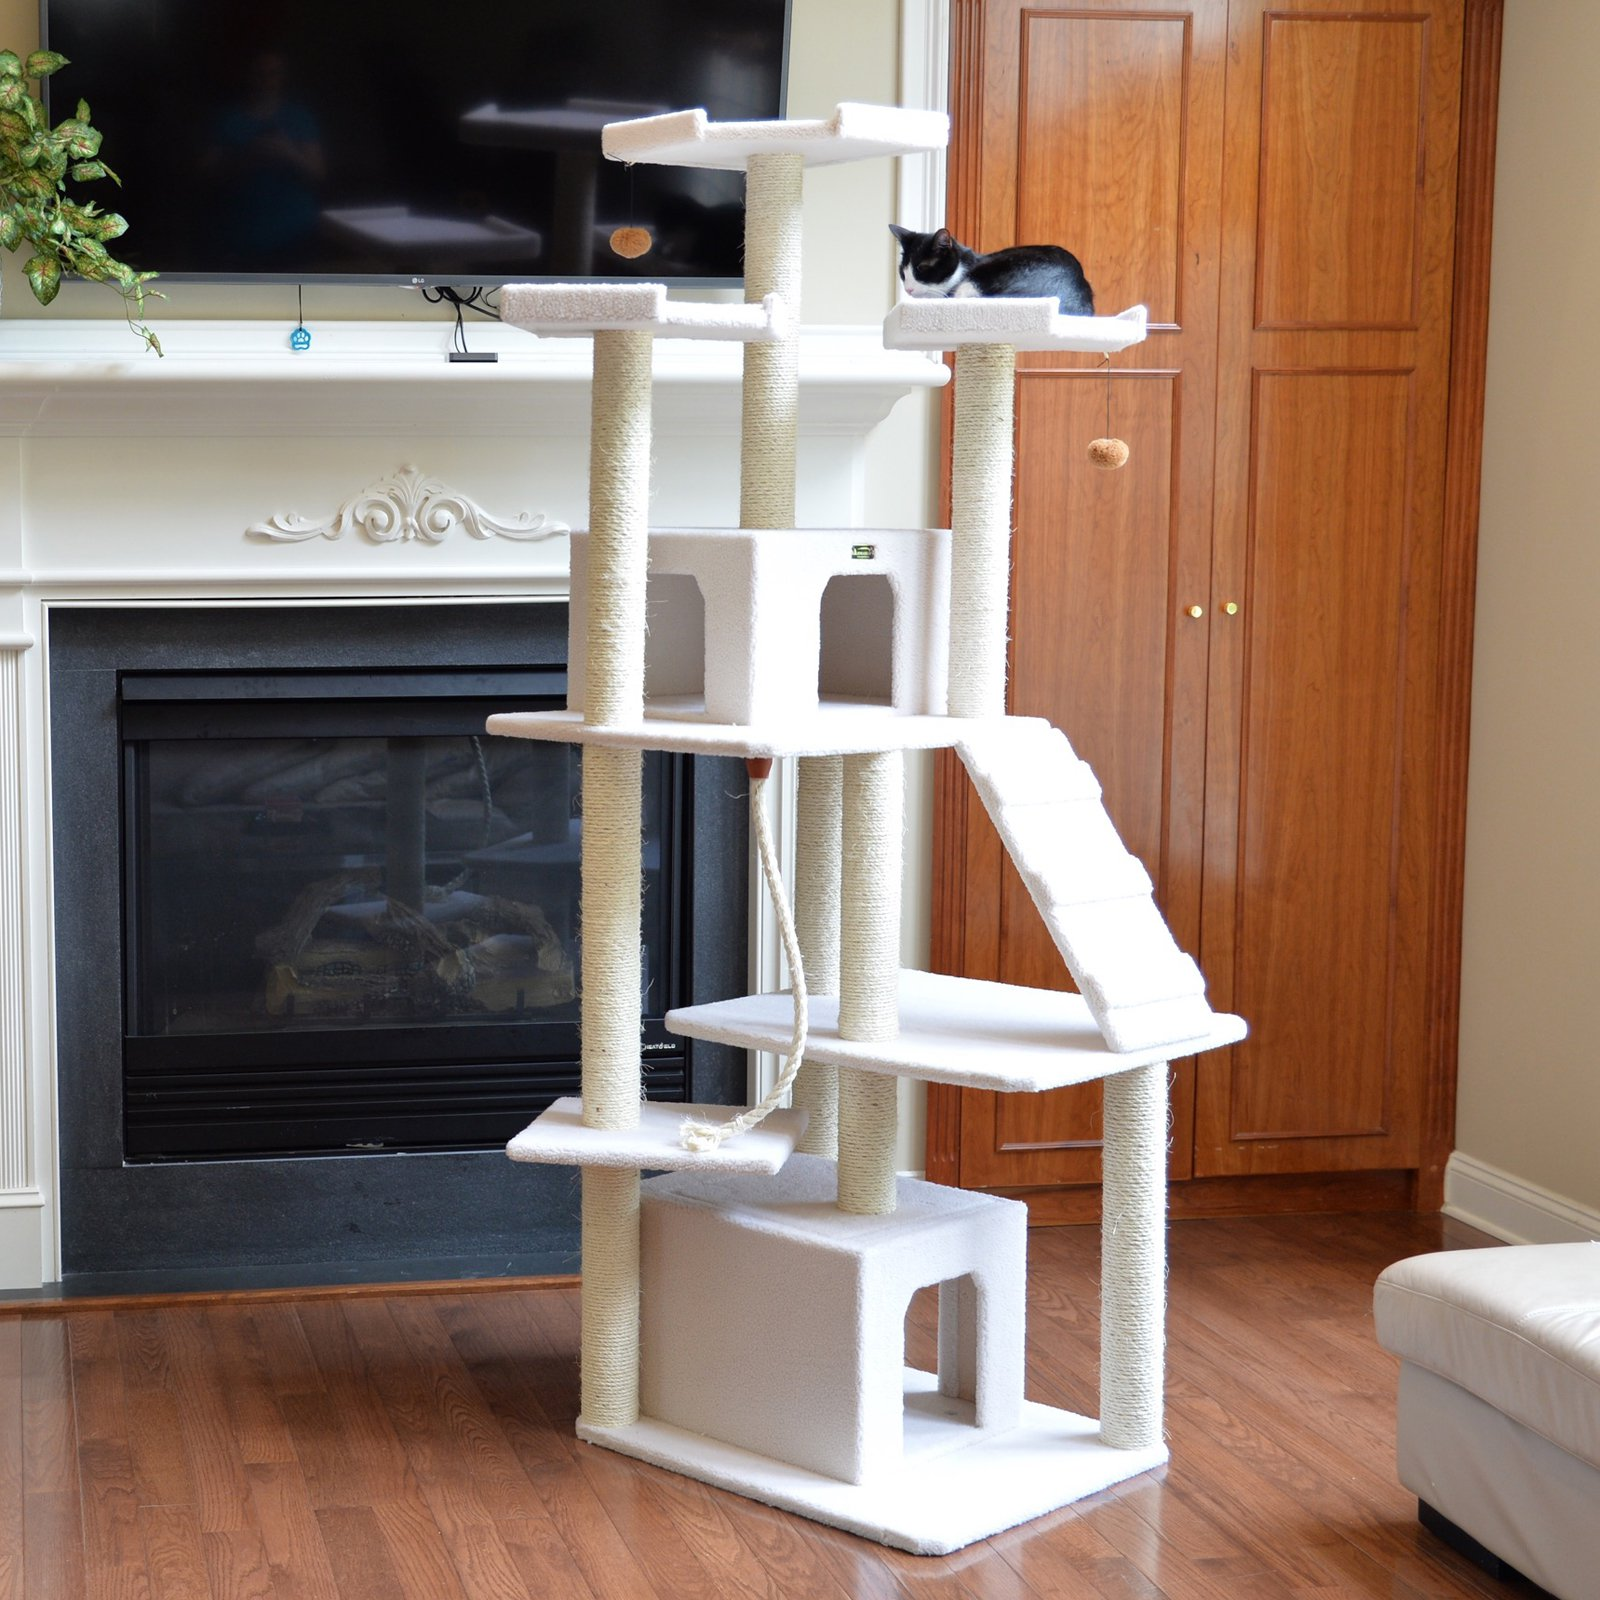 Armarkat Classic Ivory 82 in. Double Condo Triple Tower Perch Cat Tree - Ivory